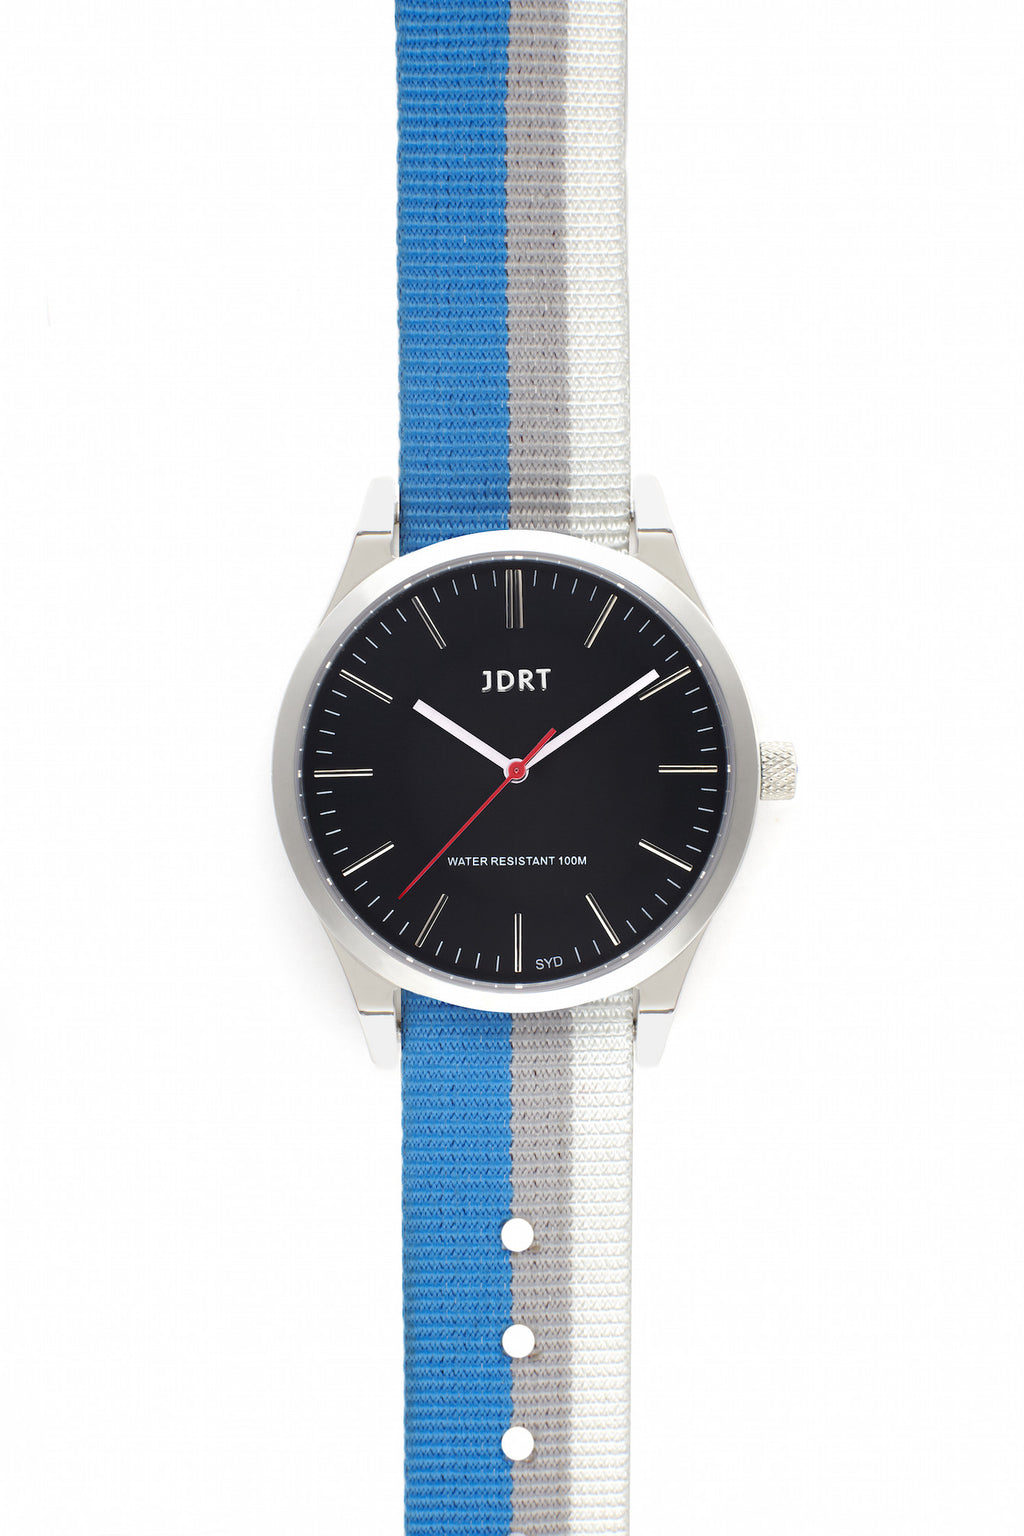 Jet Face with Bondi NATO Watch Band